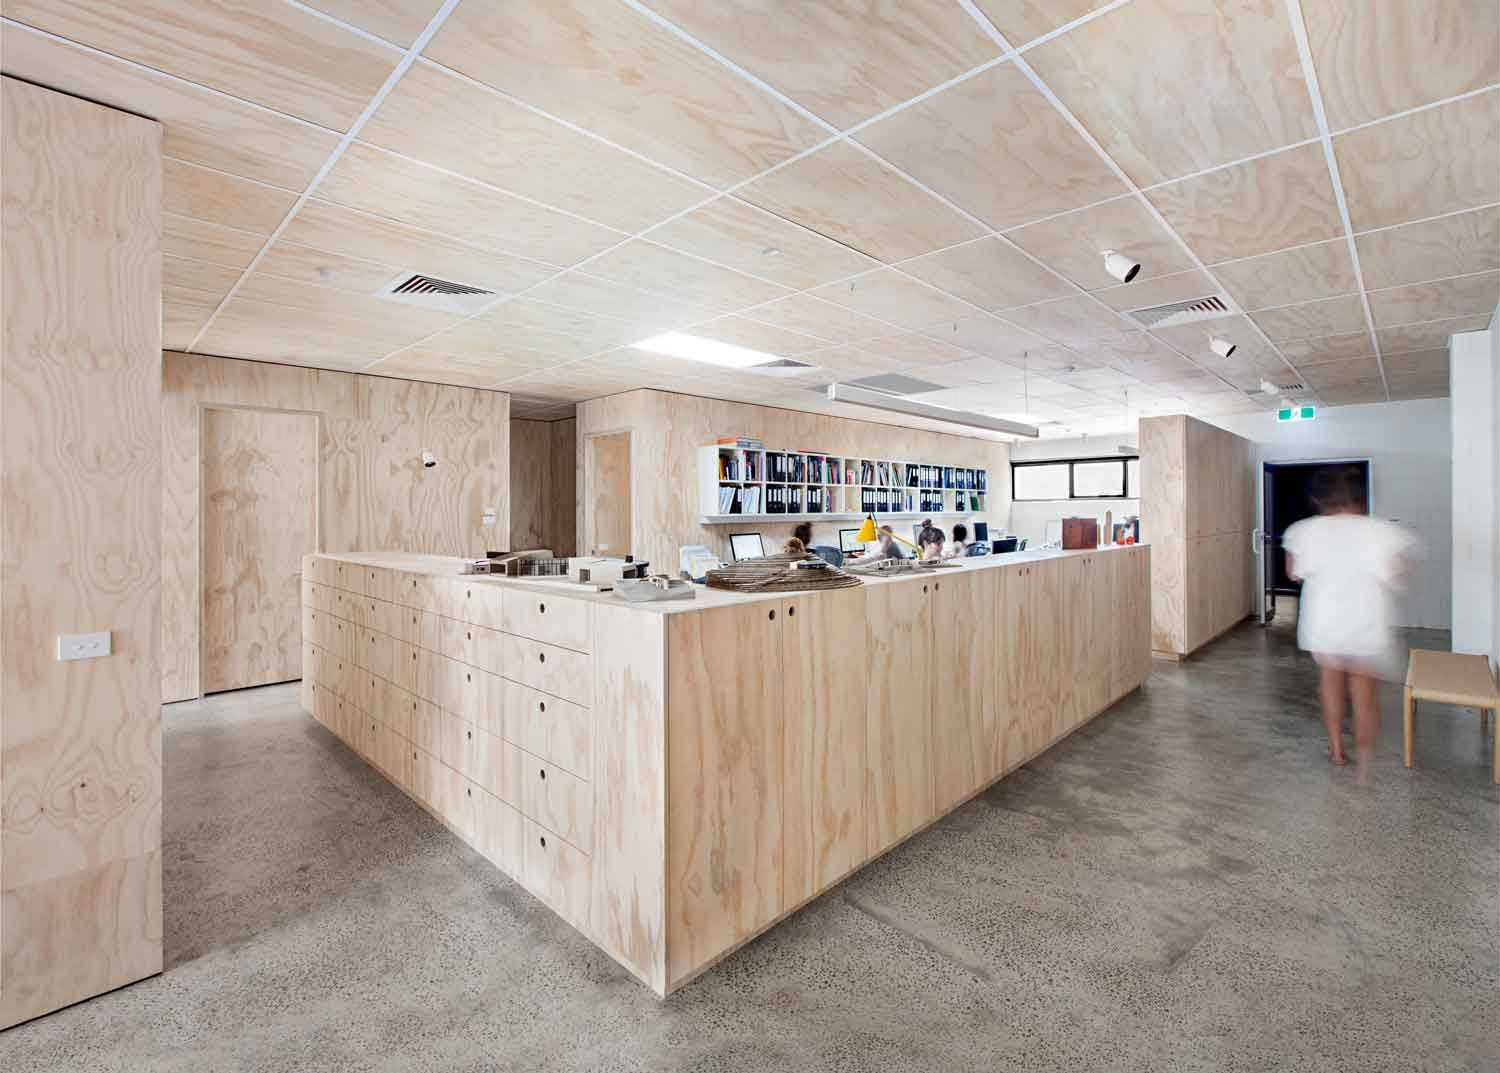 Architecture Studio Space blackwood street bunkerclare cousins architects | cousins